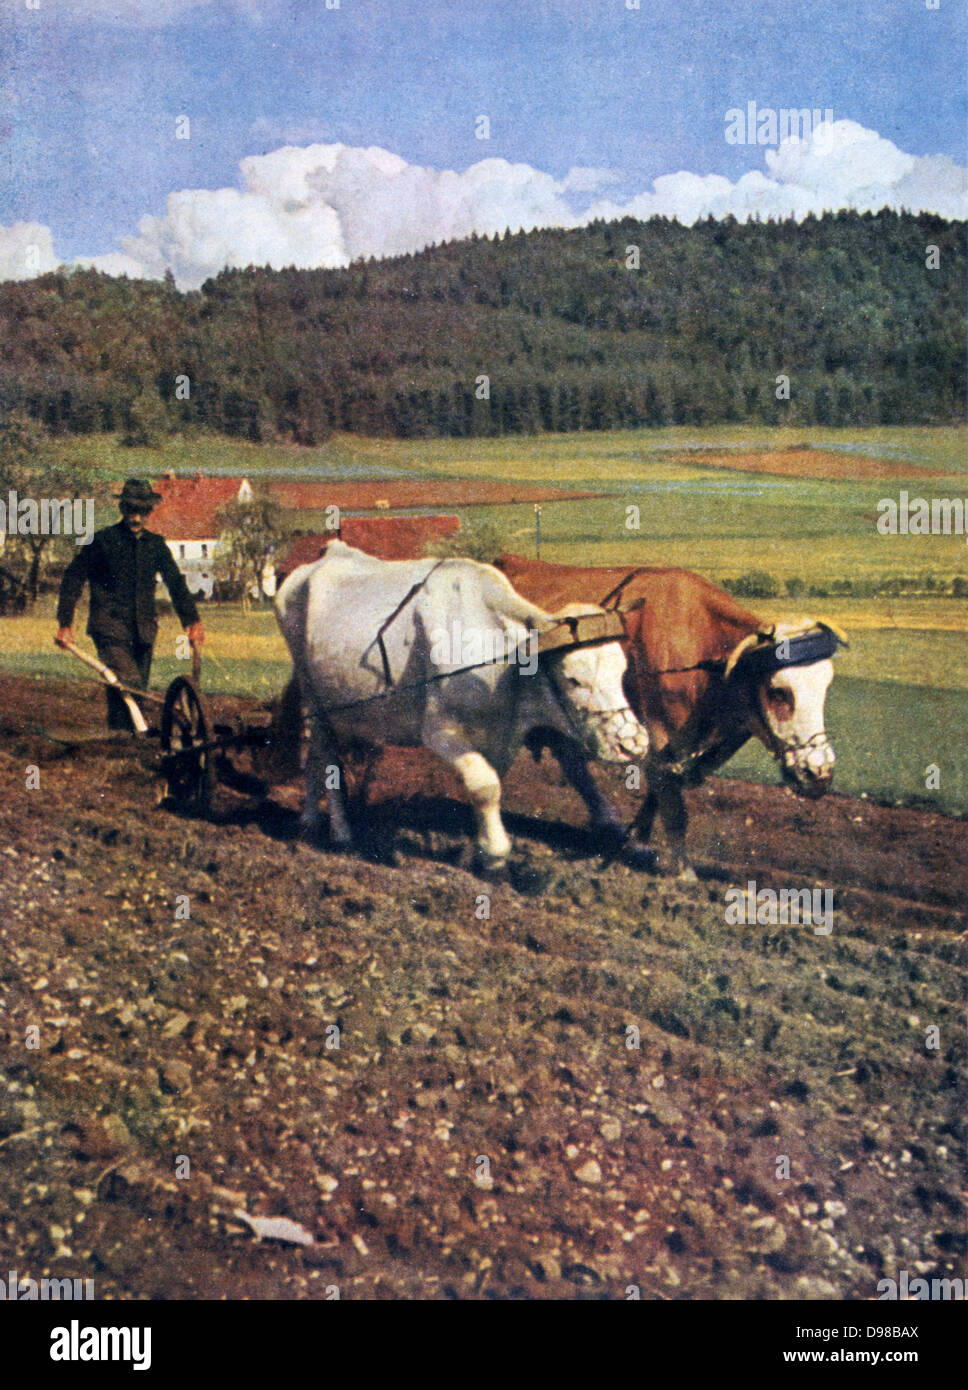 World War II 1939-1945:  Ploughing with oxen.  From 'Signal', April, 1943, German propaganda magazine produced - Stock Image